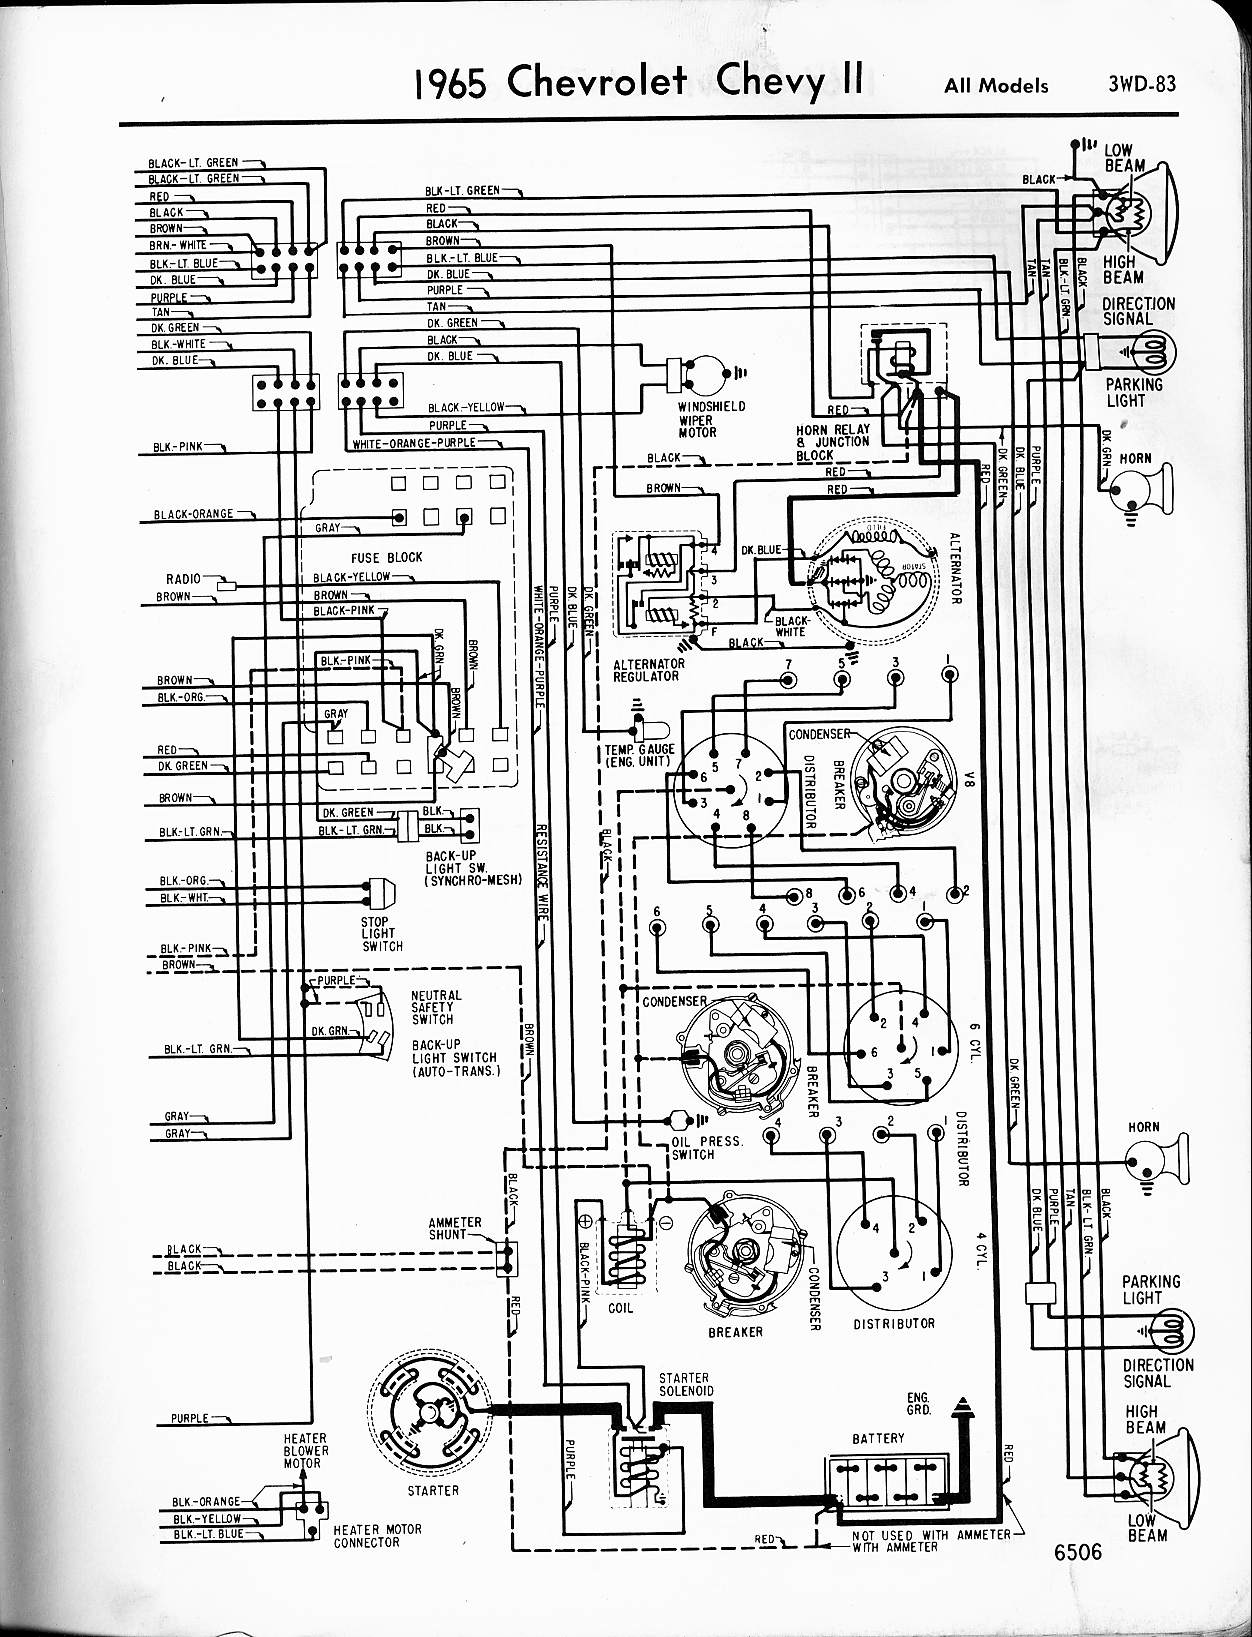 1978 f250 steering column wiring diagram another wiring diagrams u2022 rh  benpaterson co uk 2001 F 250 Super Duty Wiring Diagram 1968 Ford F100 Wiring  ...